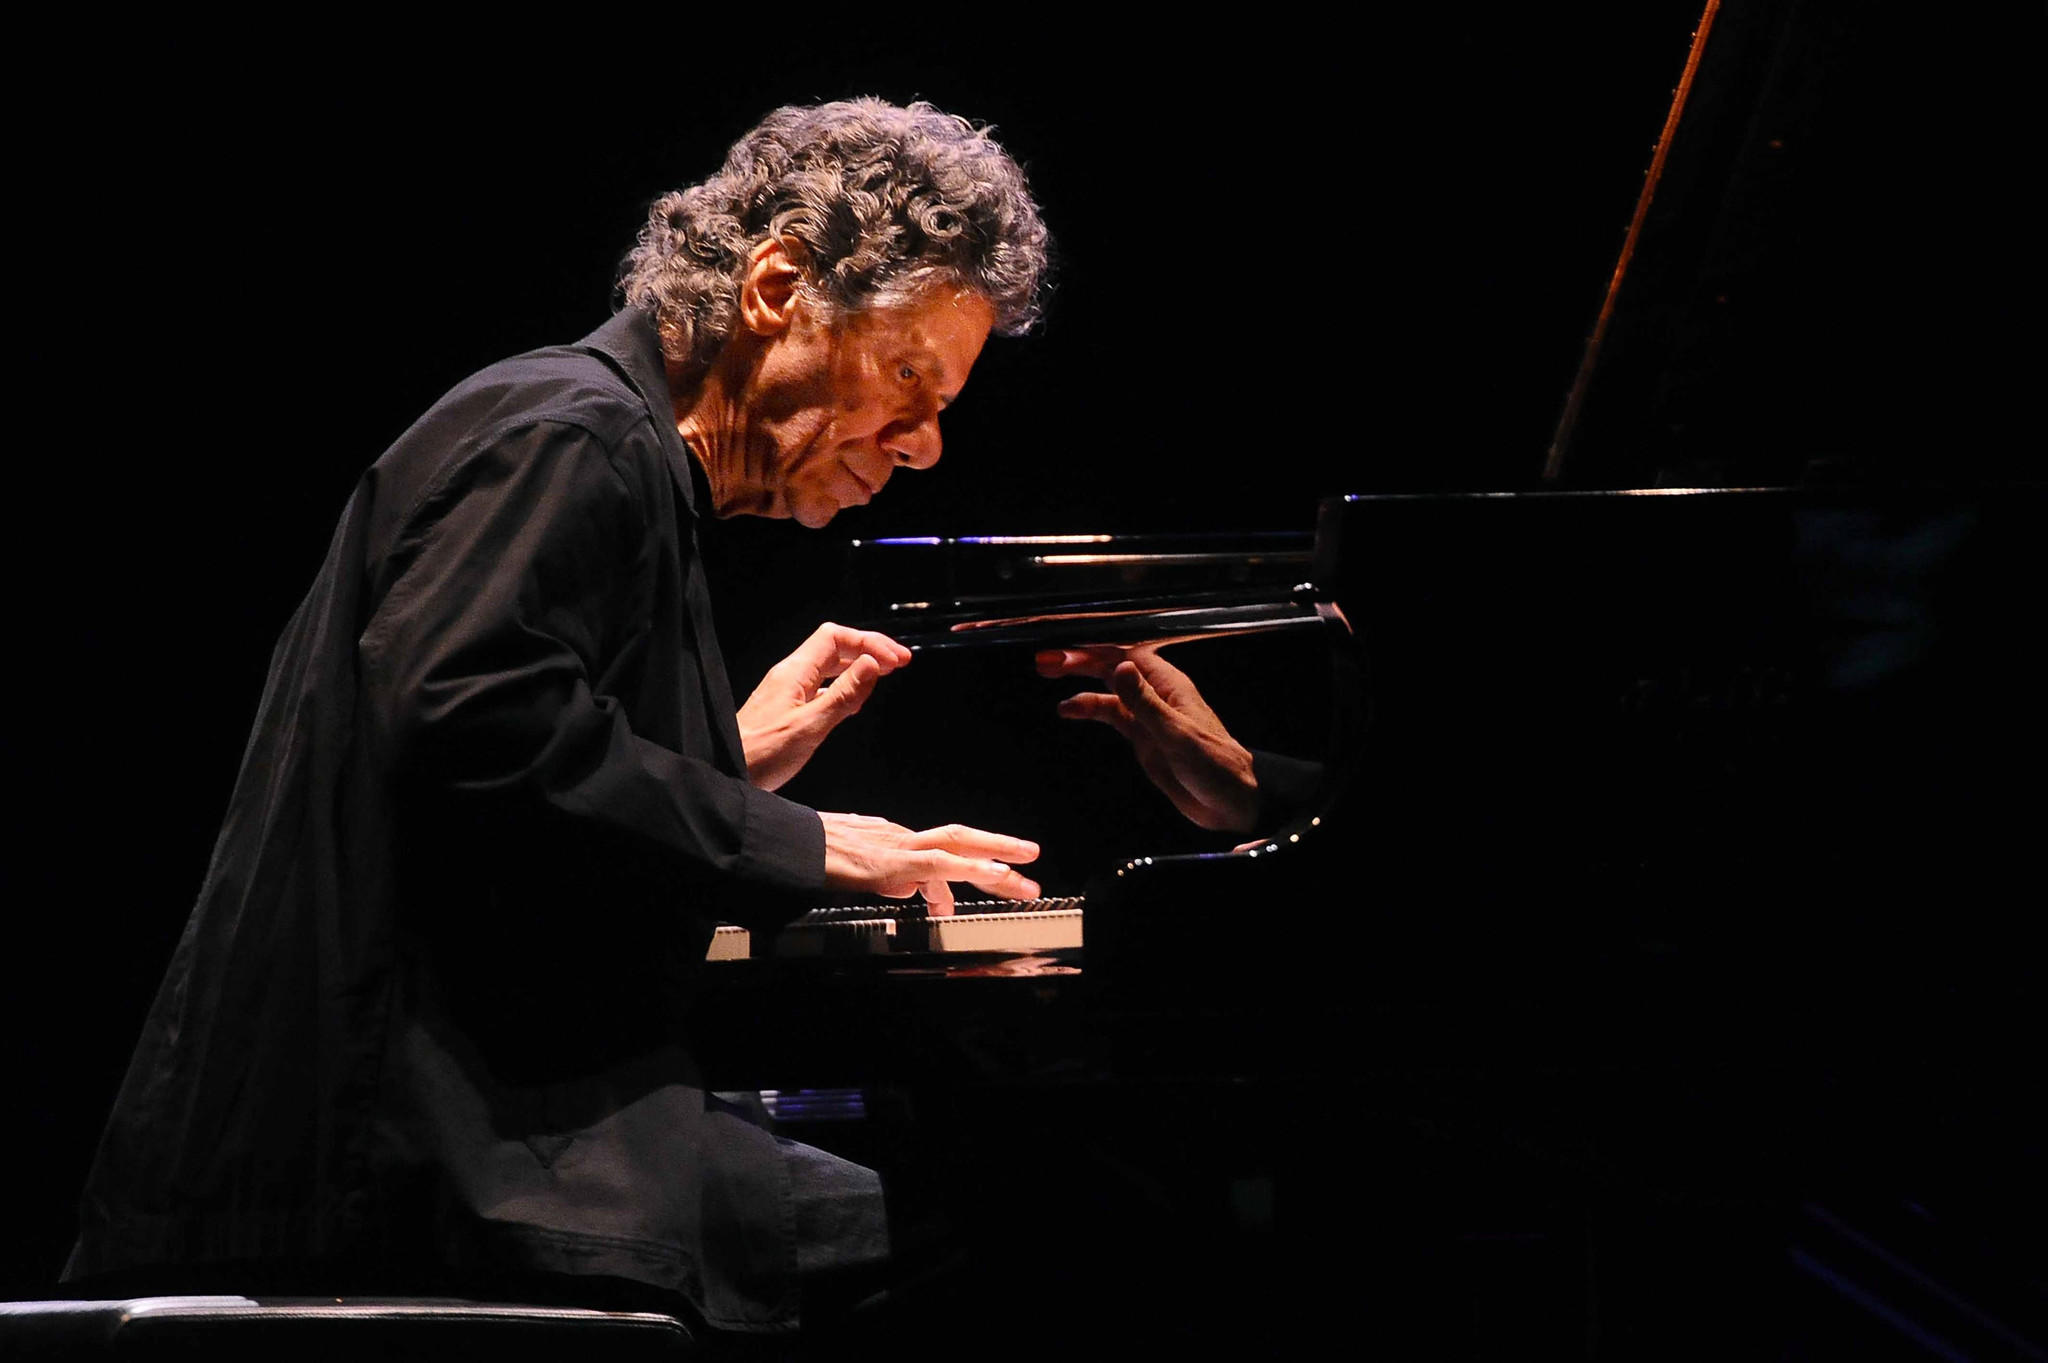 American jazz pianist Chick Corea will perform with Béla Fleck at UCLA.